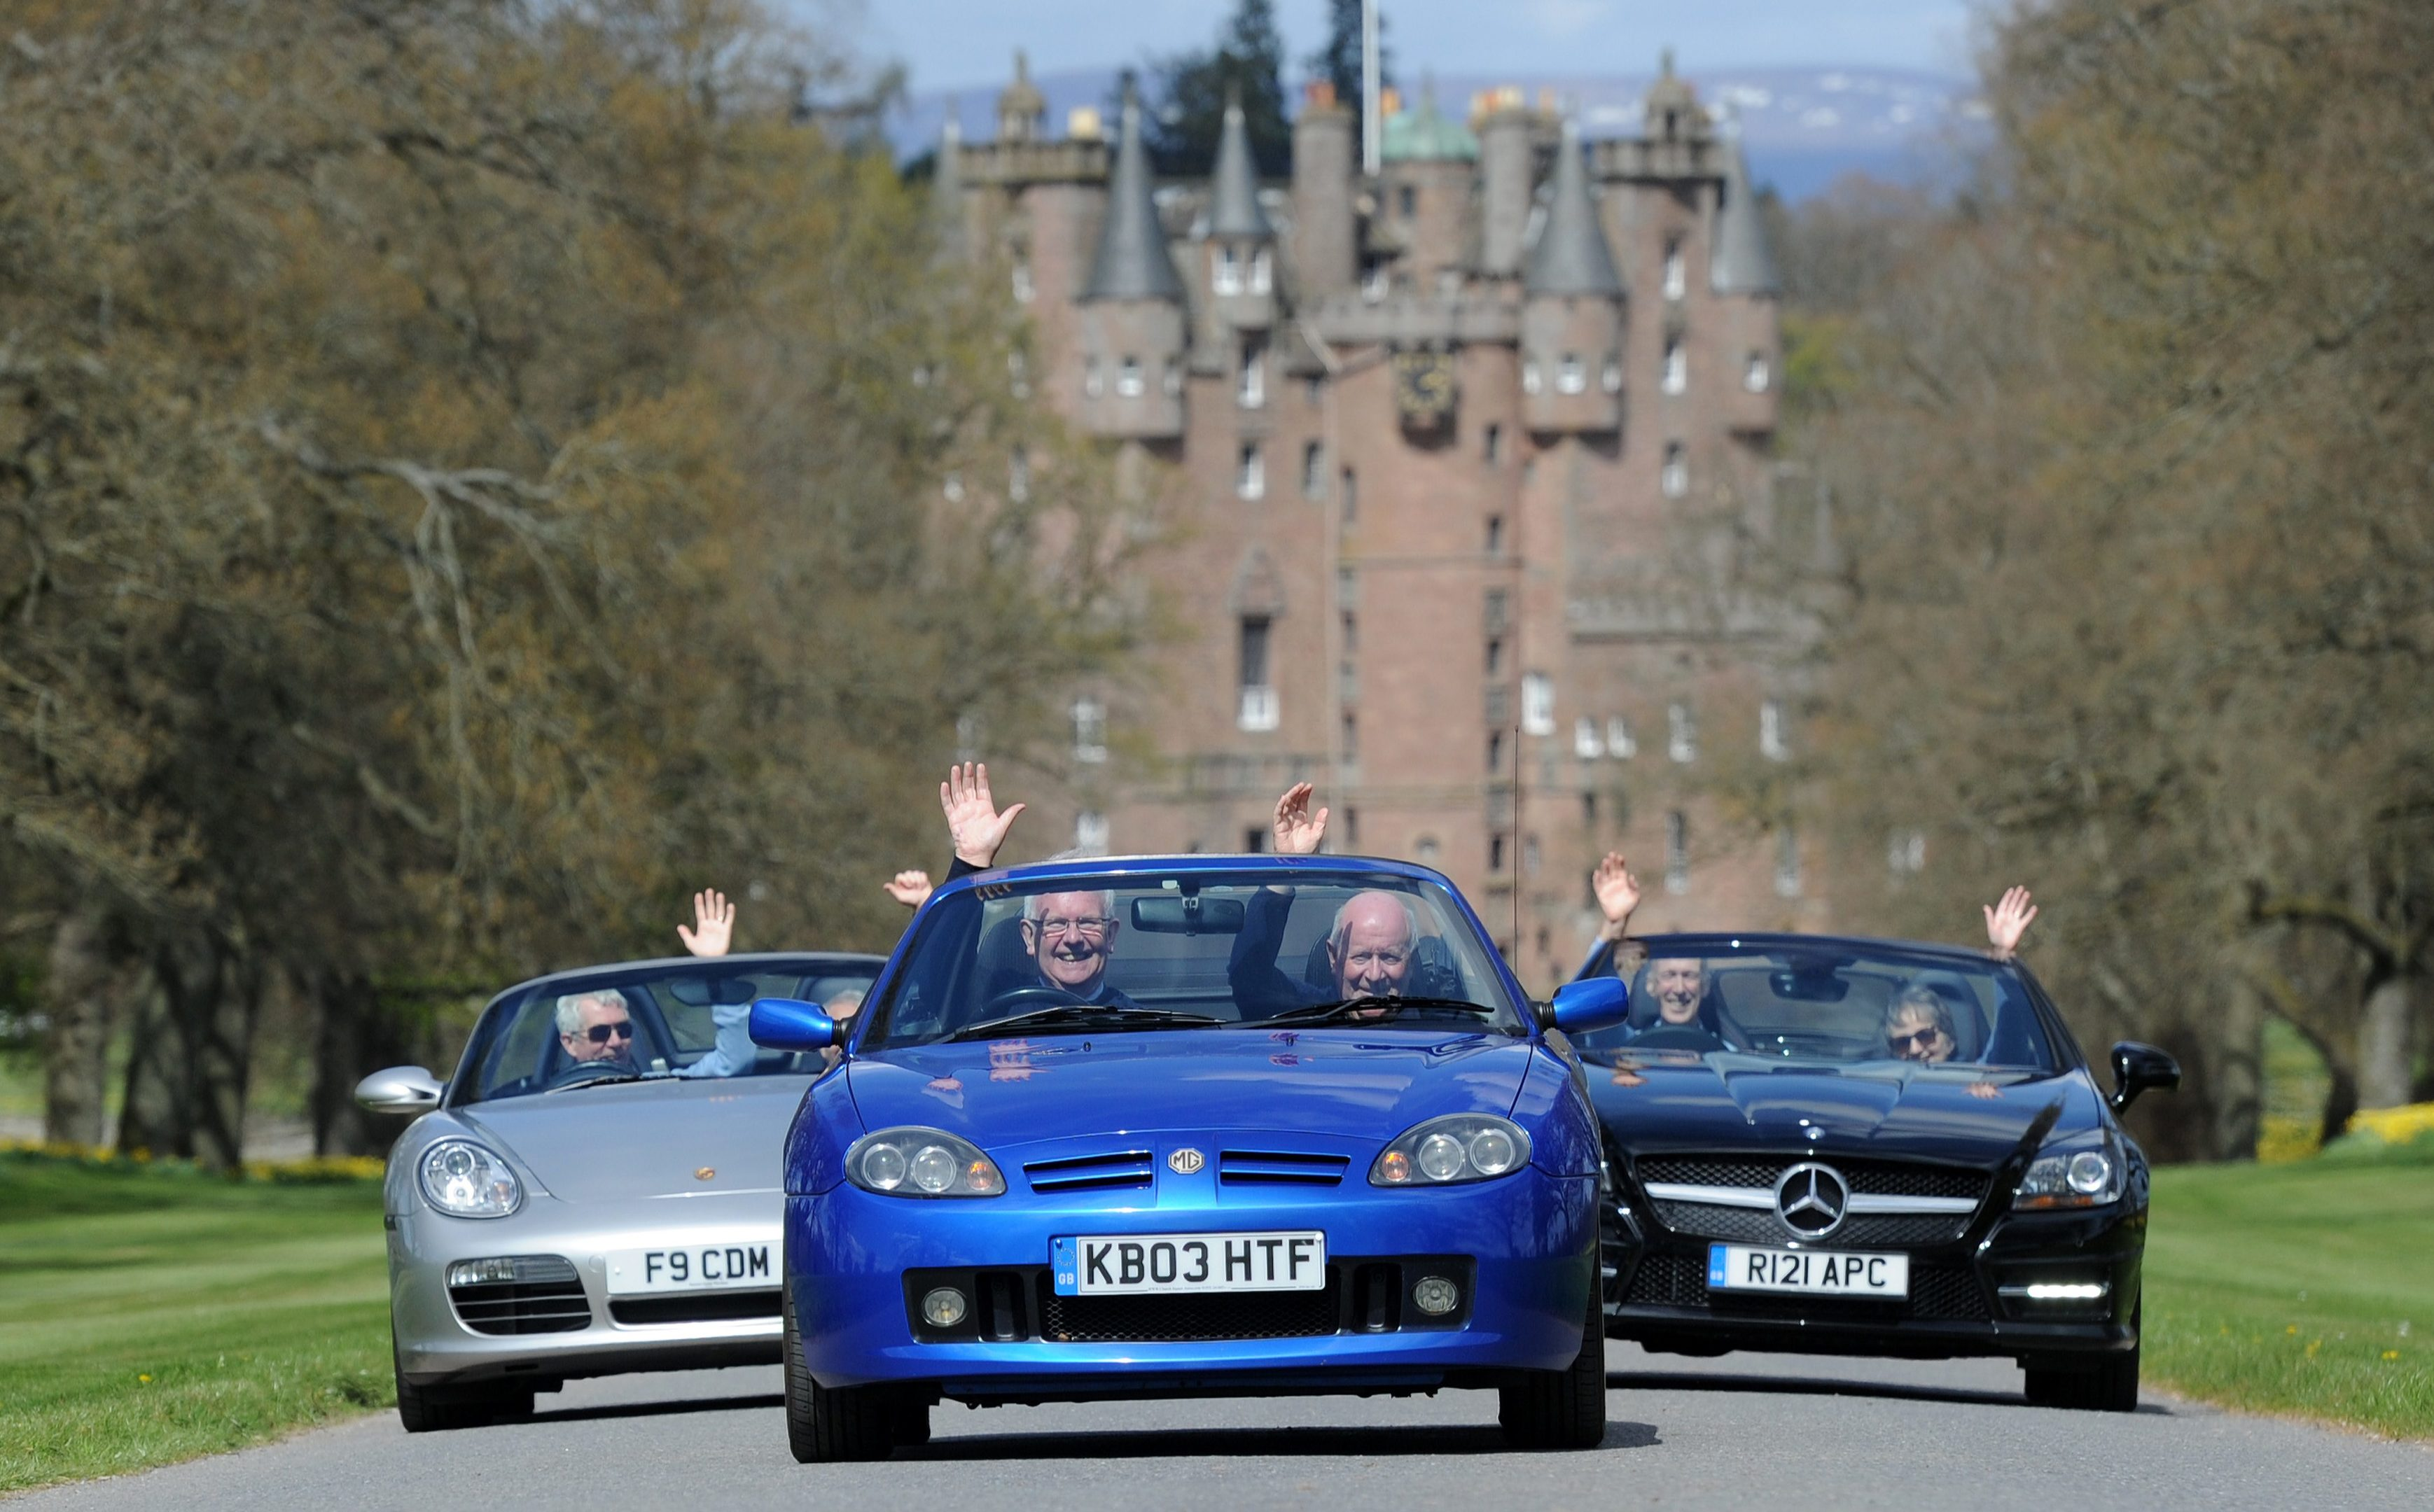 Forfar Rotary Club will raise money for Scotland's Charity Air Ambulance at the Strathmore Classic Car Tour.